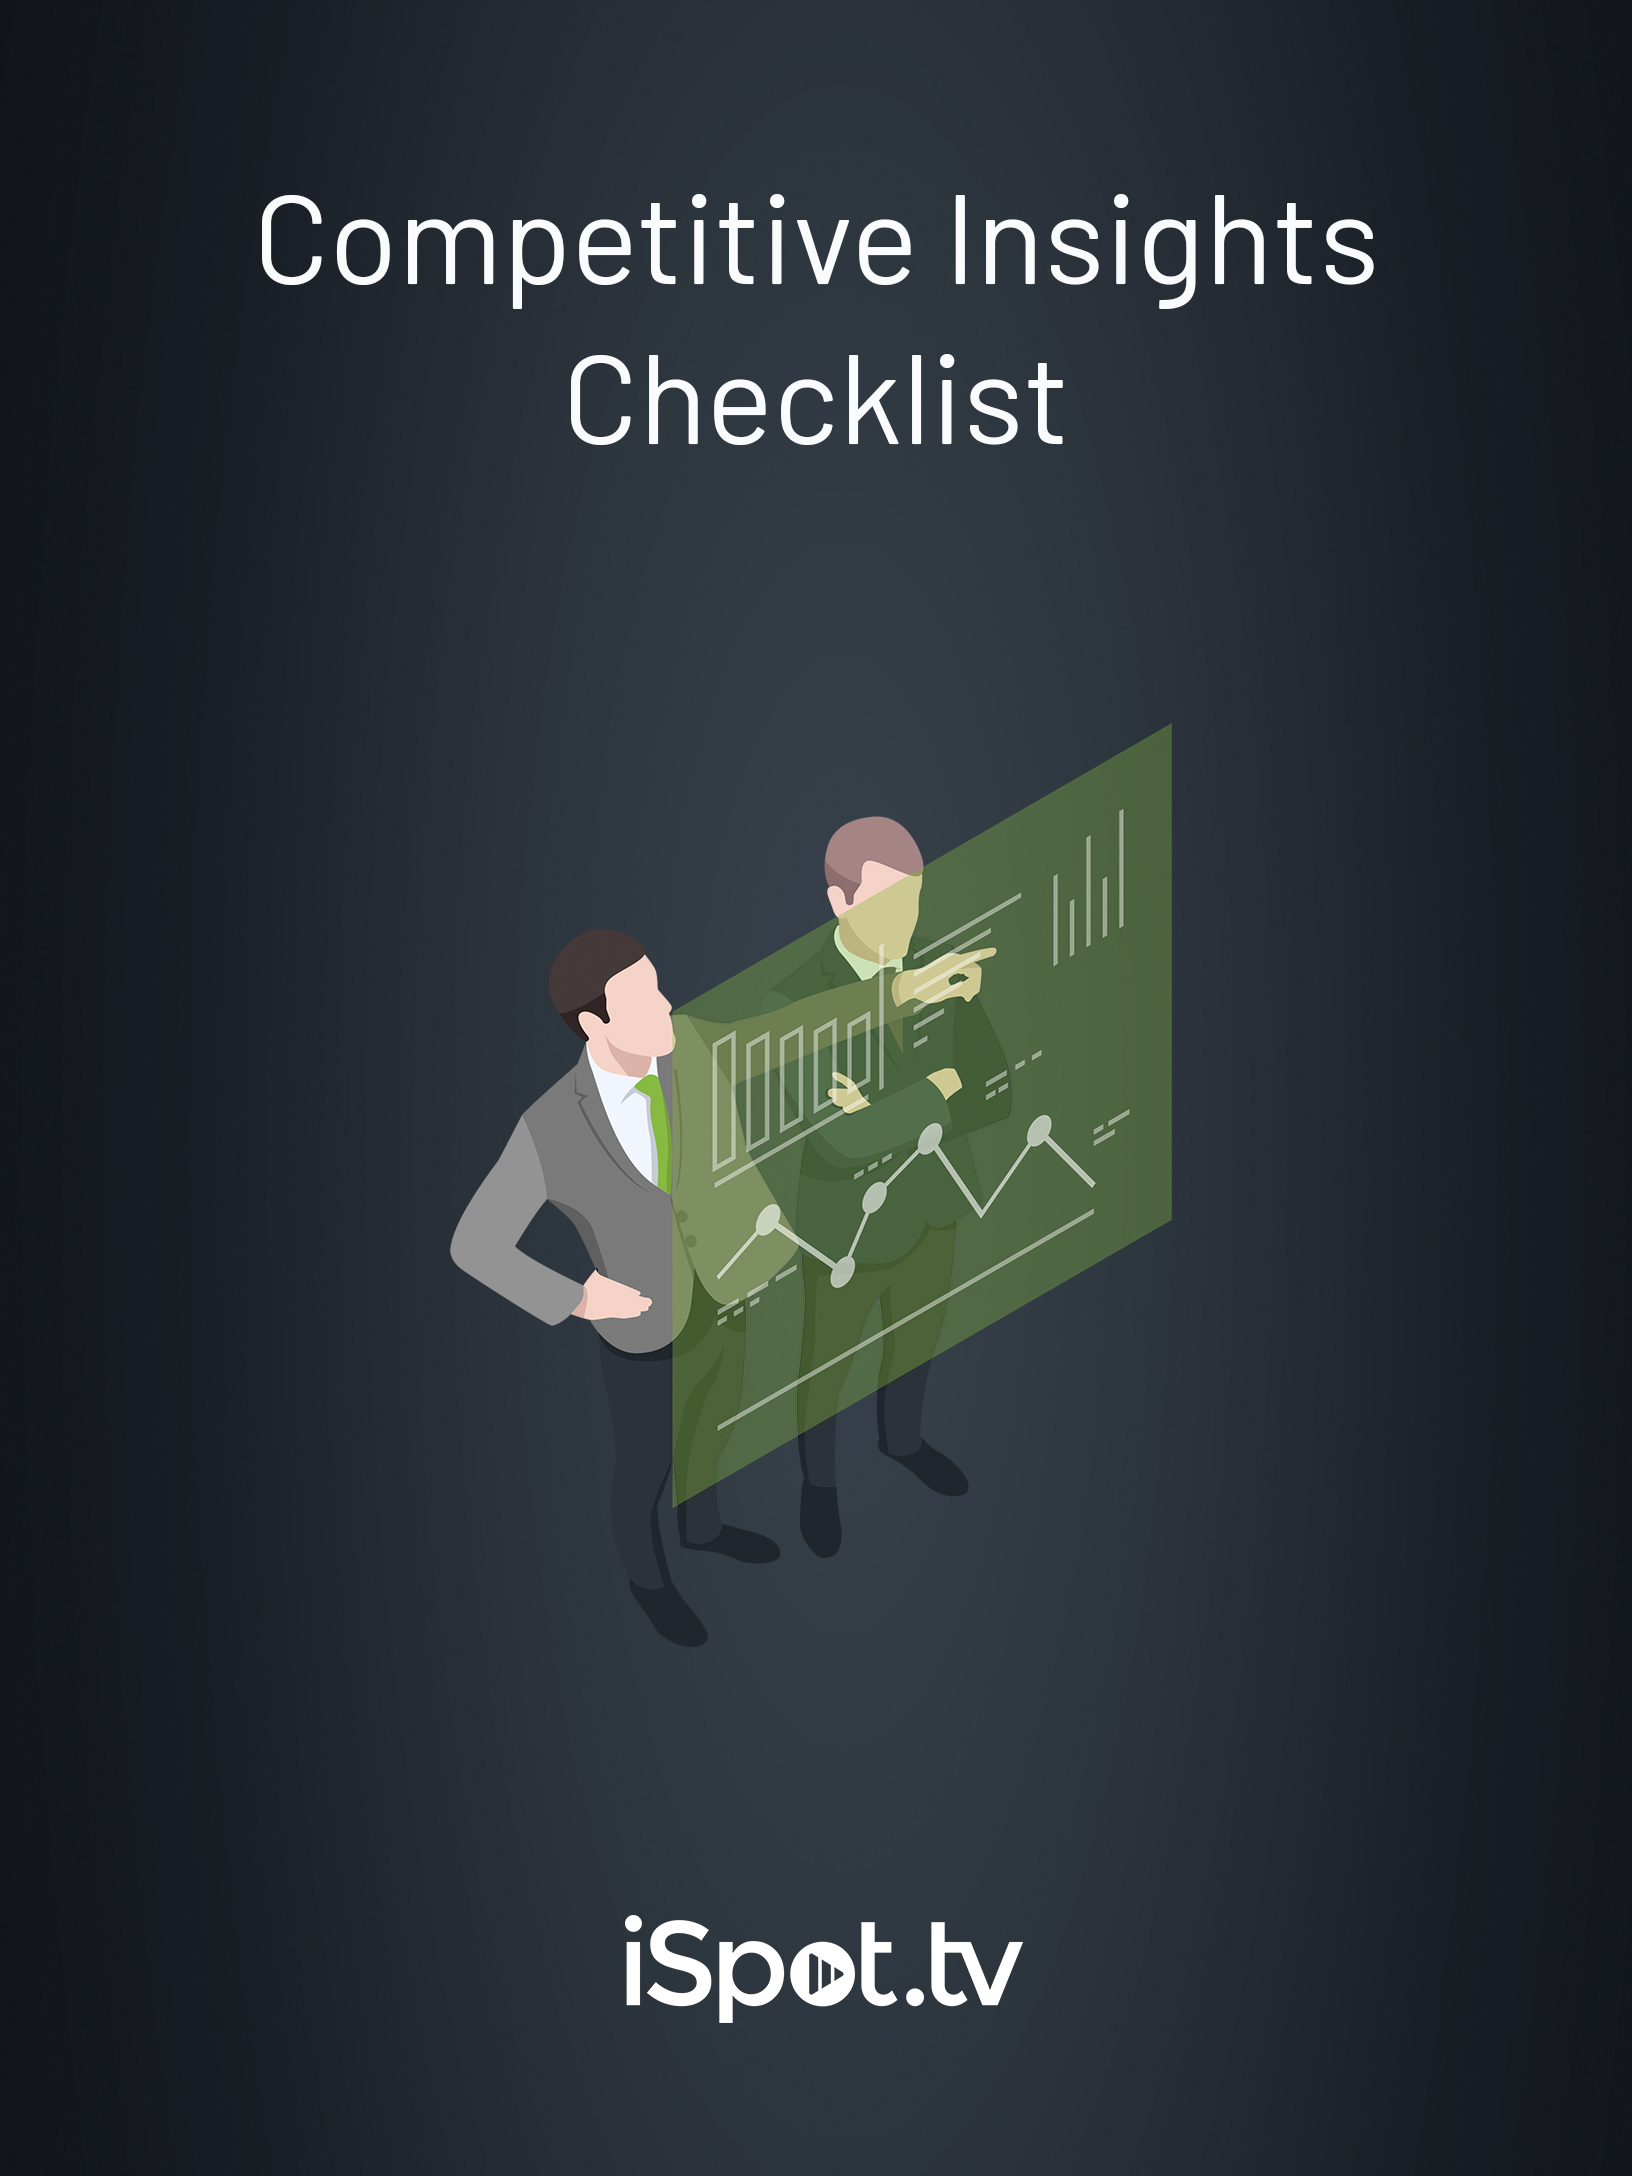 Competitive Insights Checklist